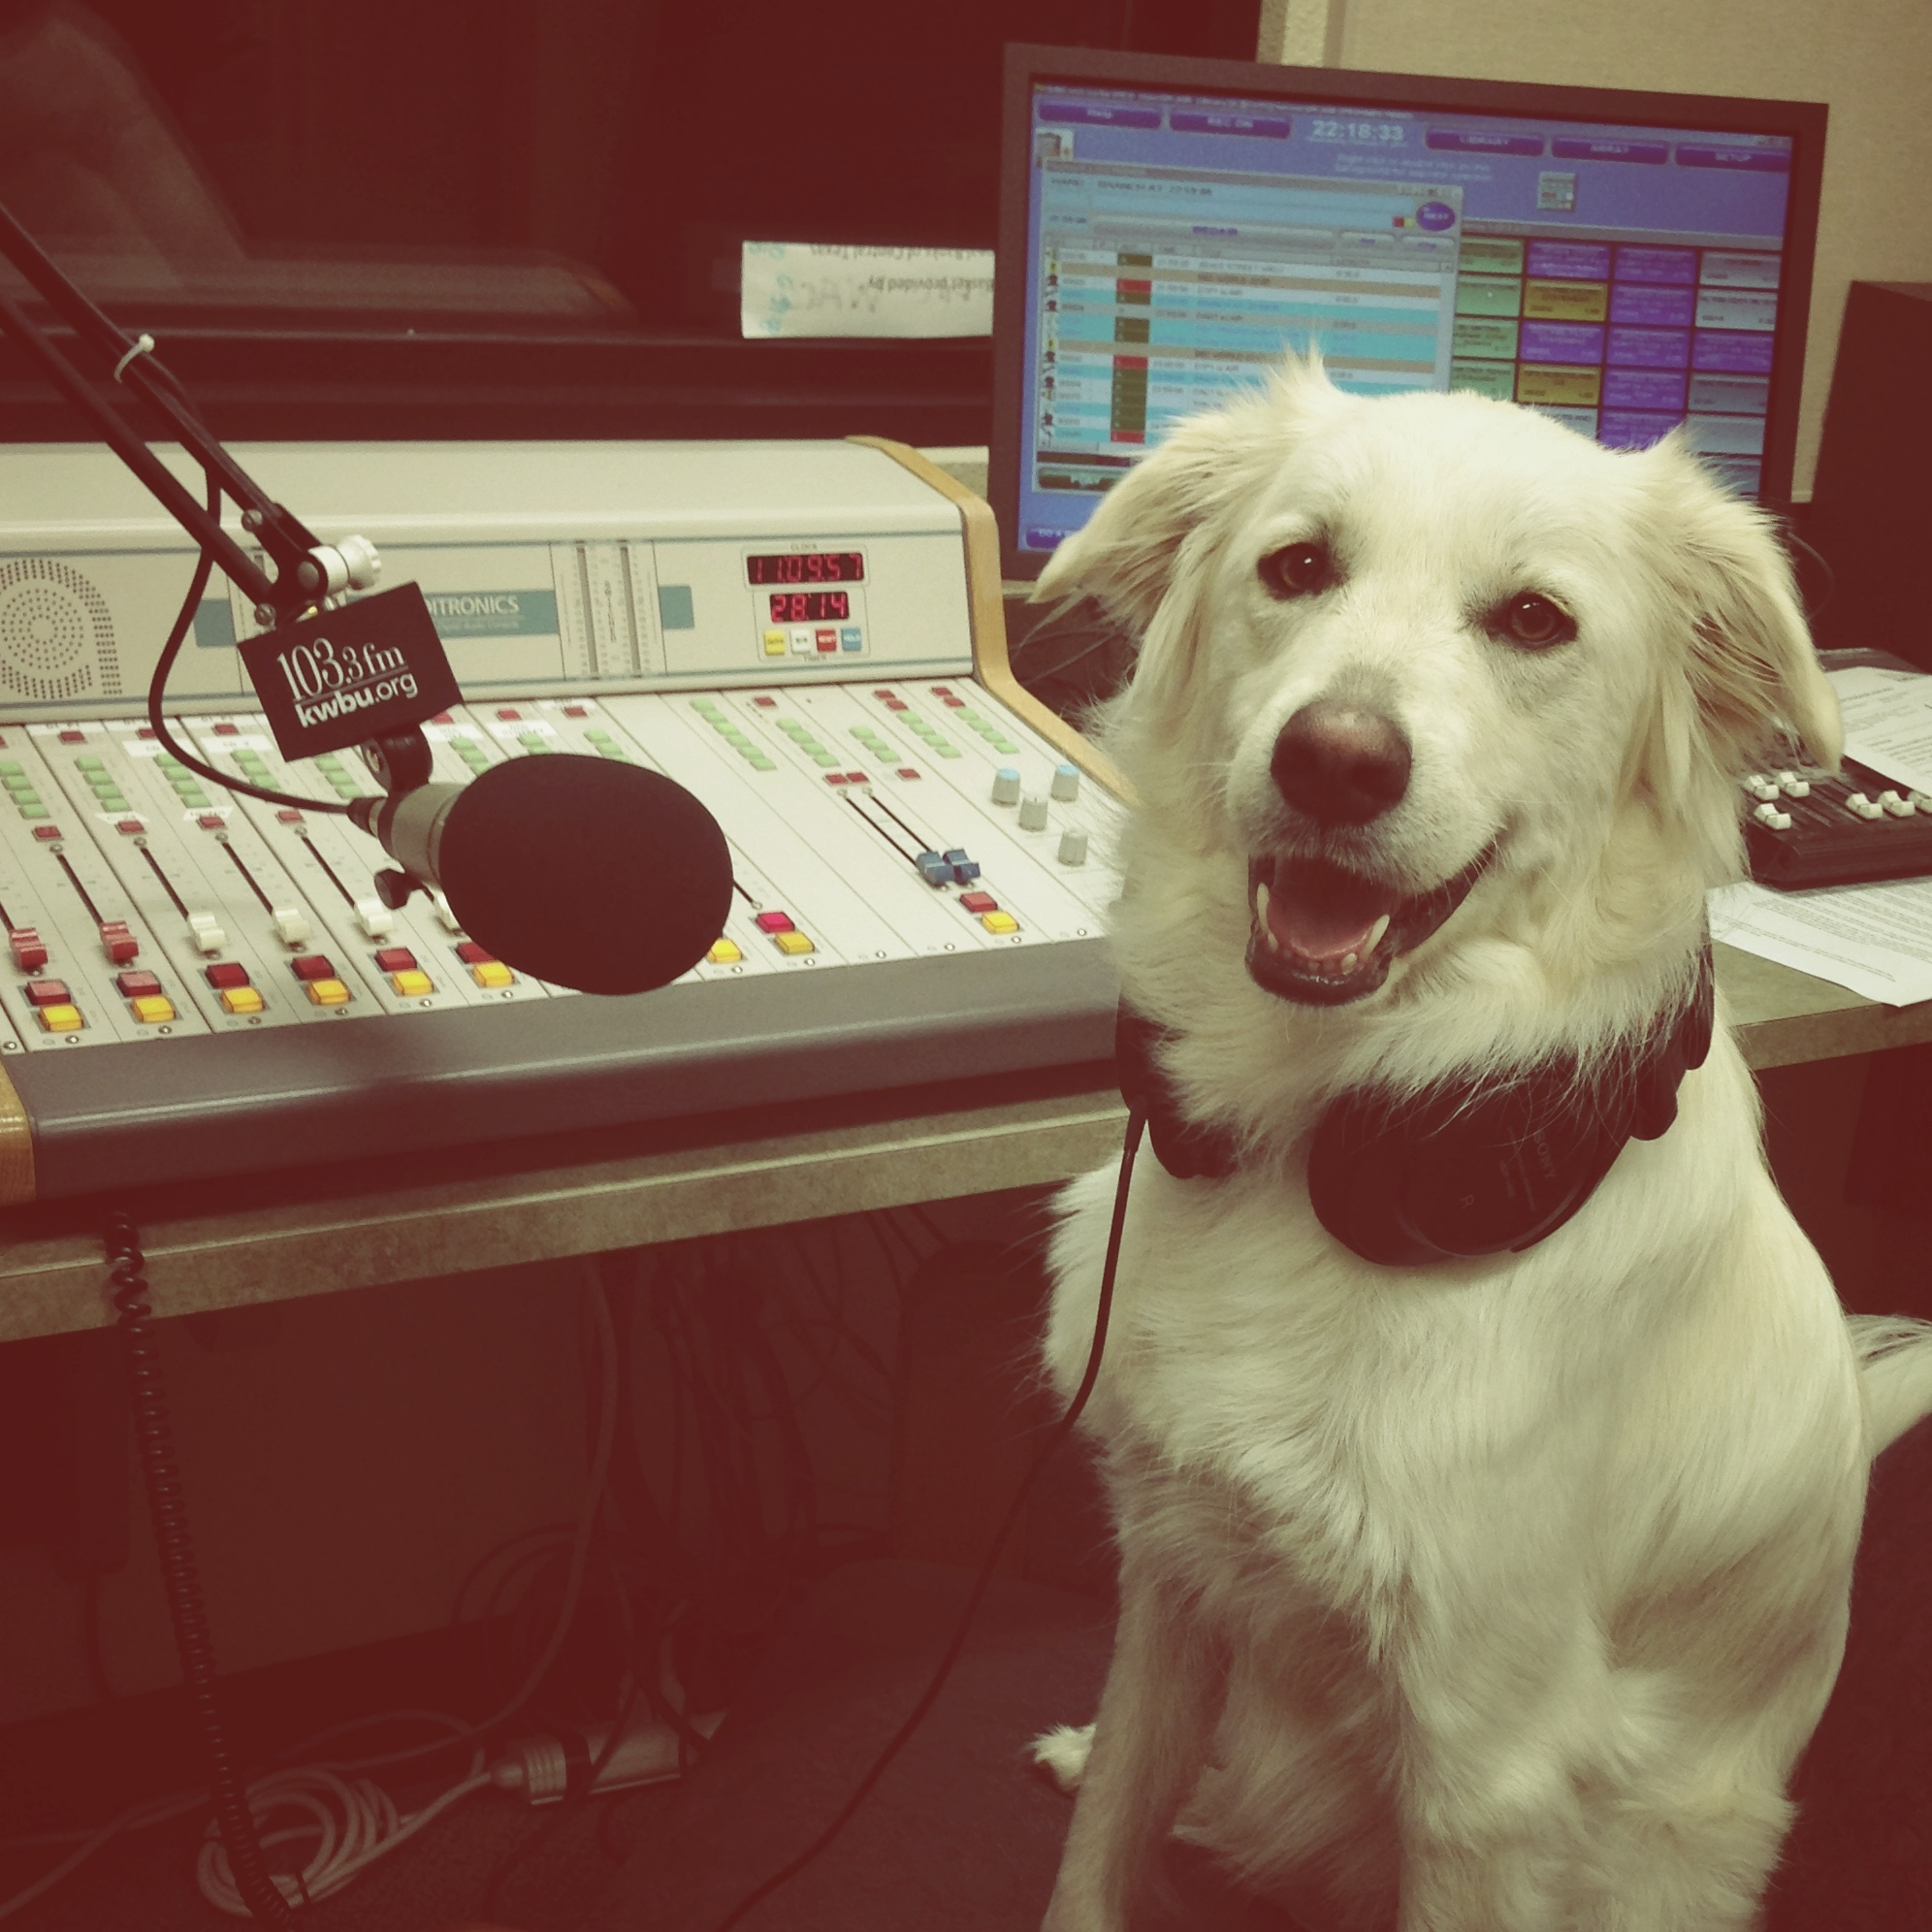 """Evie loves that her owner is an NPR member so she can guest host all her favorite shows! KWBU FM in Waco [Texas] is Evie's NPR!"""